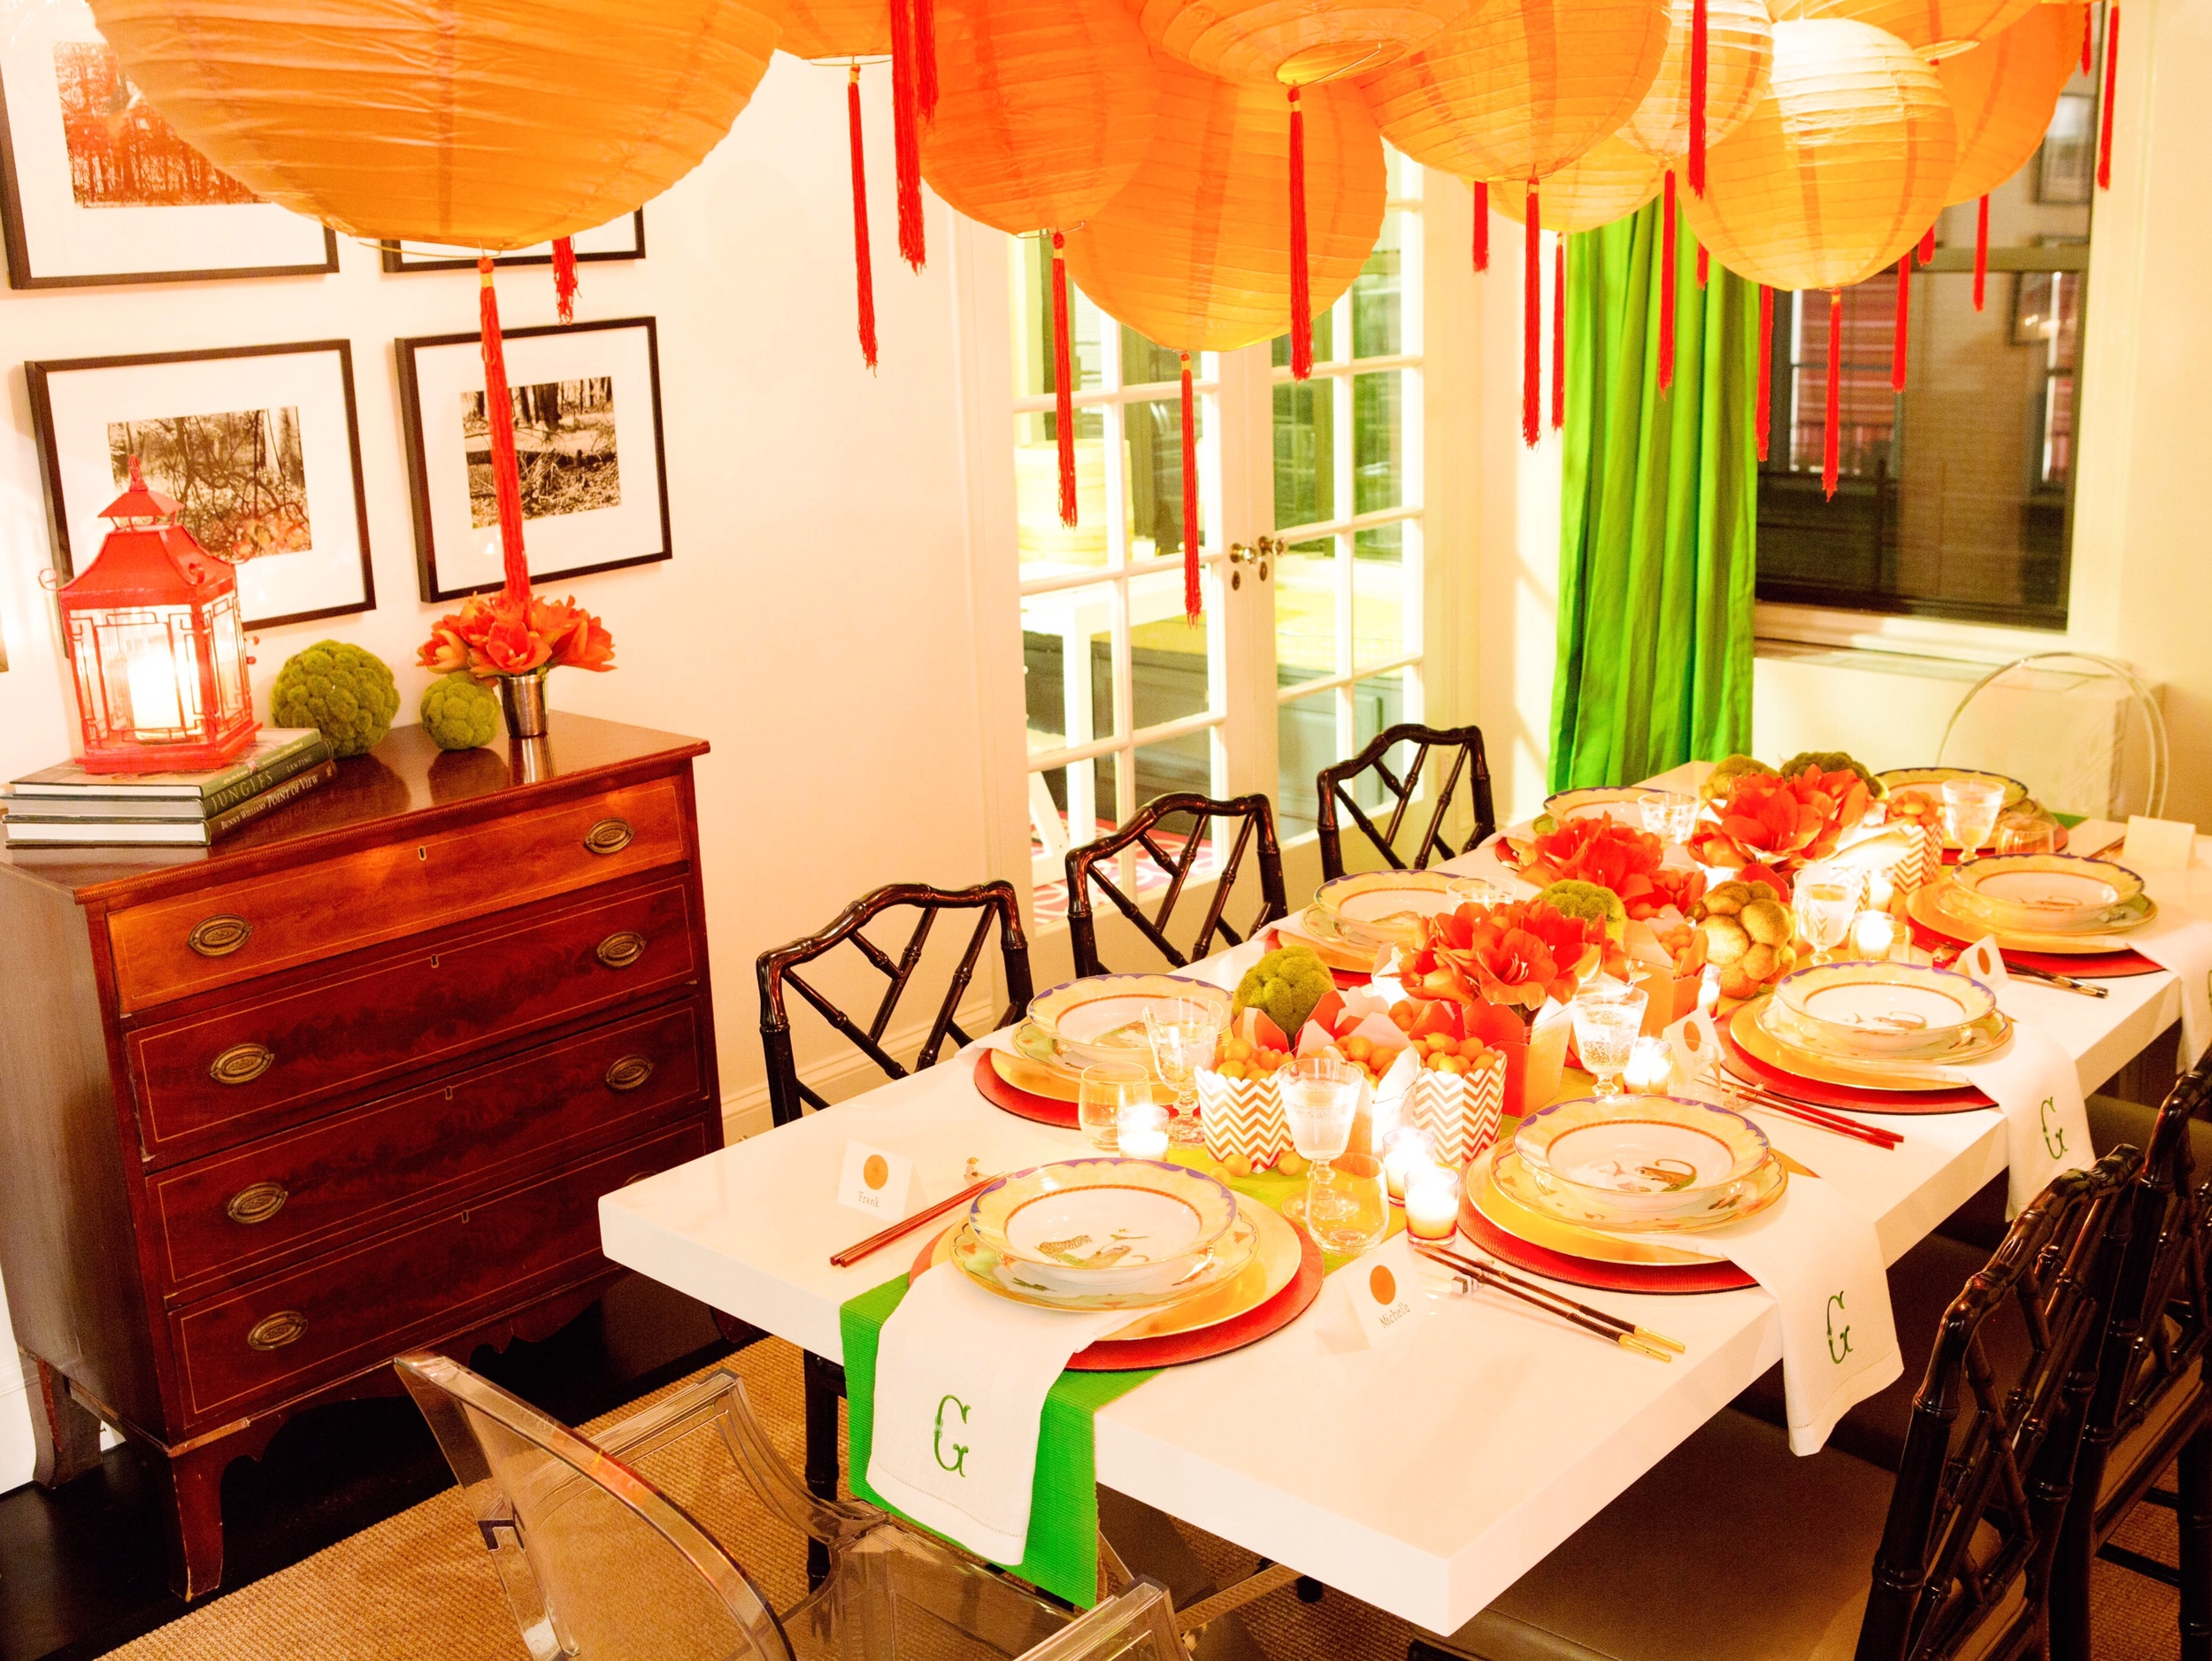 With candles lit, the bright colors of the table felt warm and inviting!